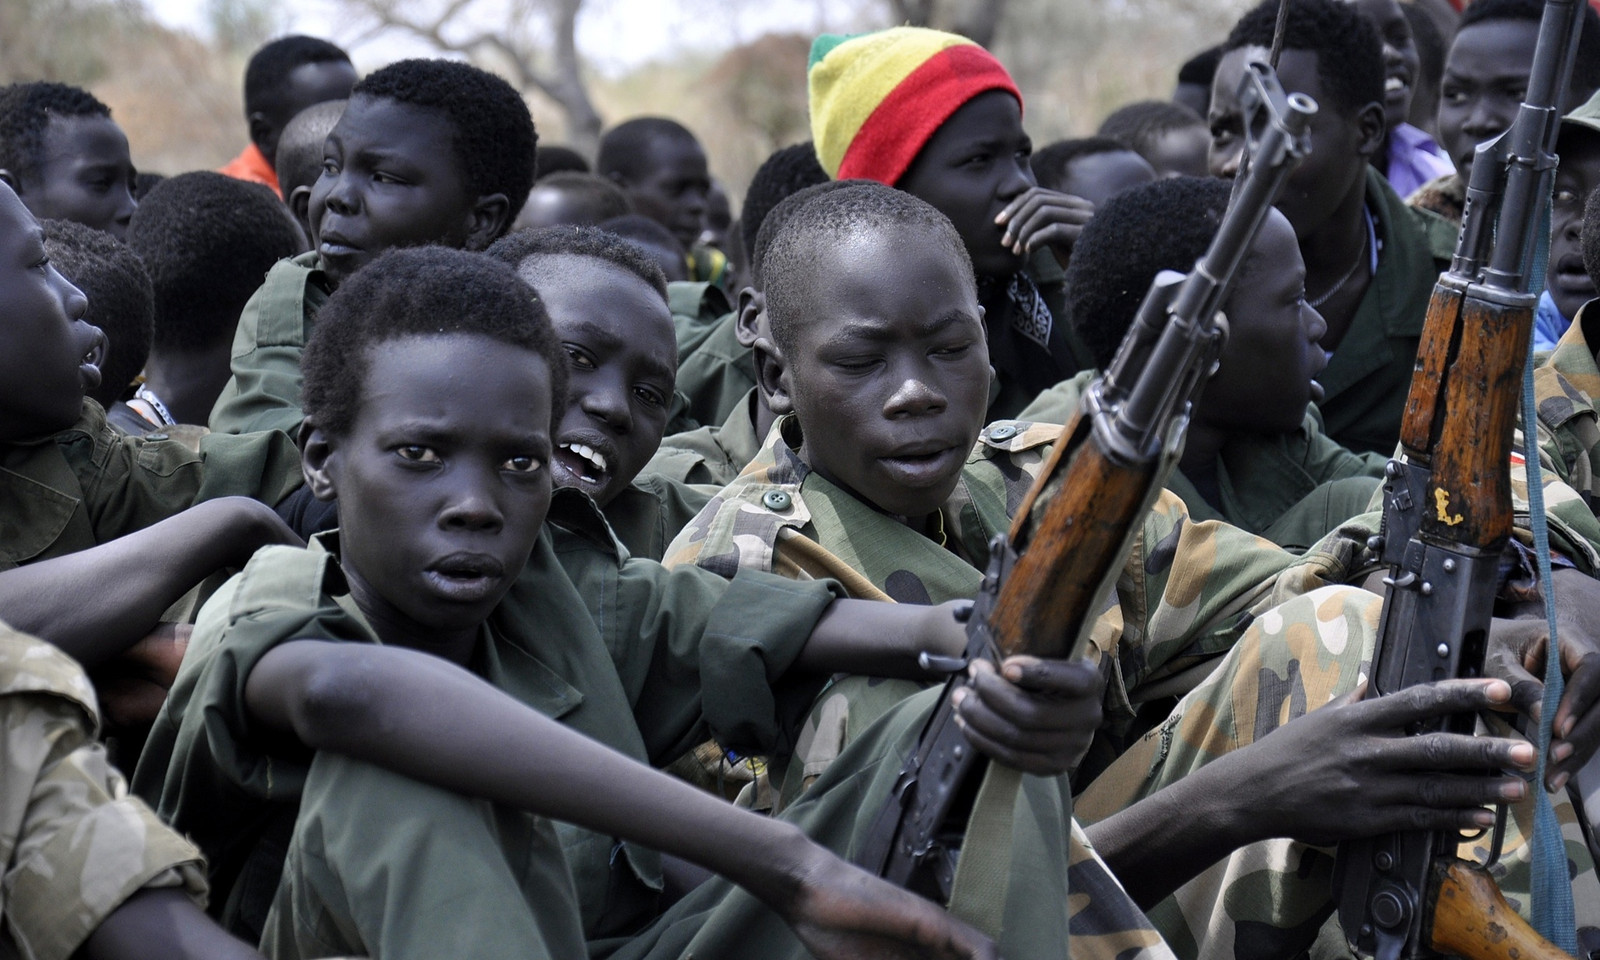 Southsudanchildsoldiers